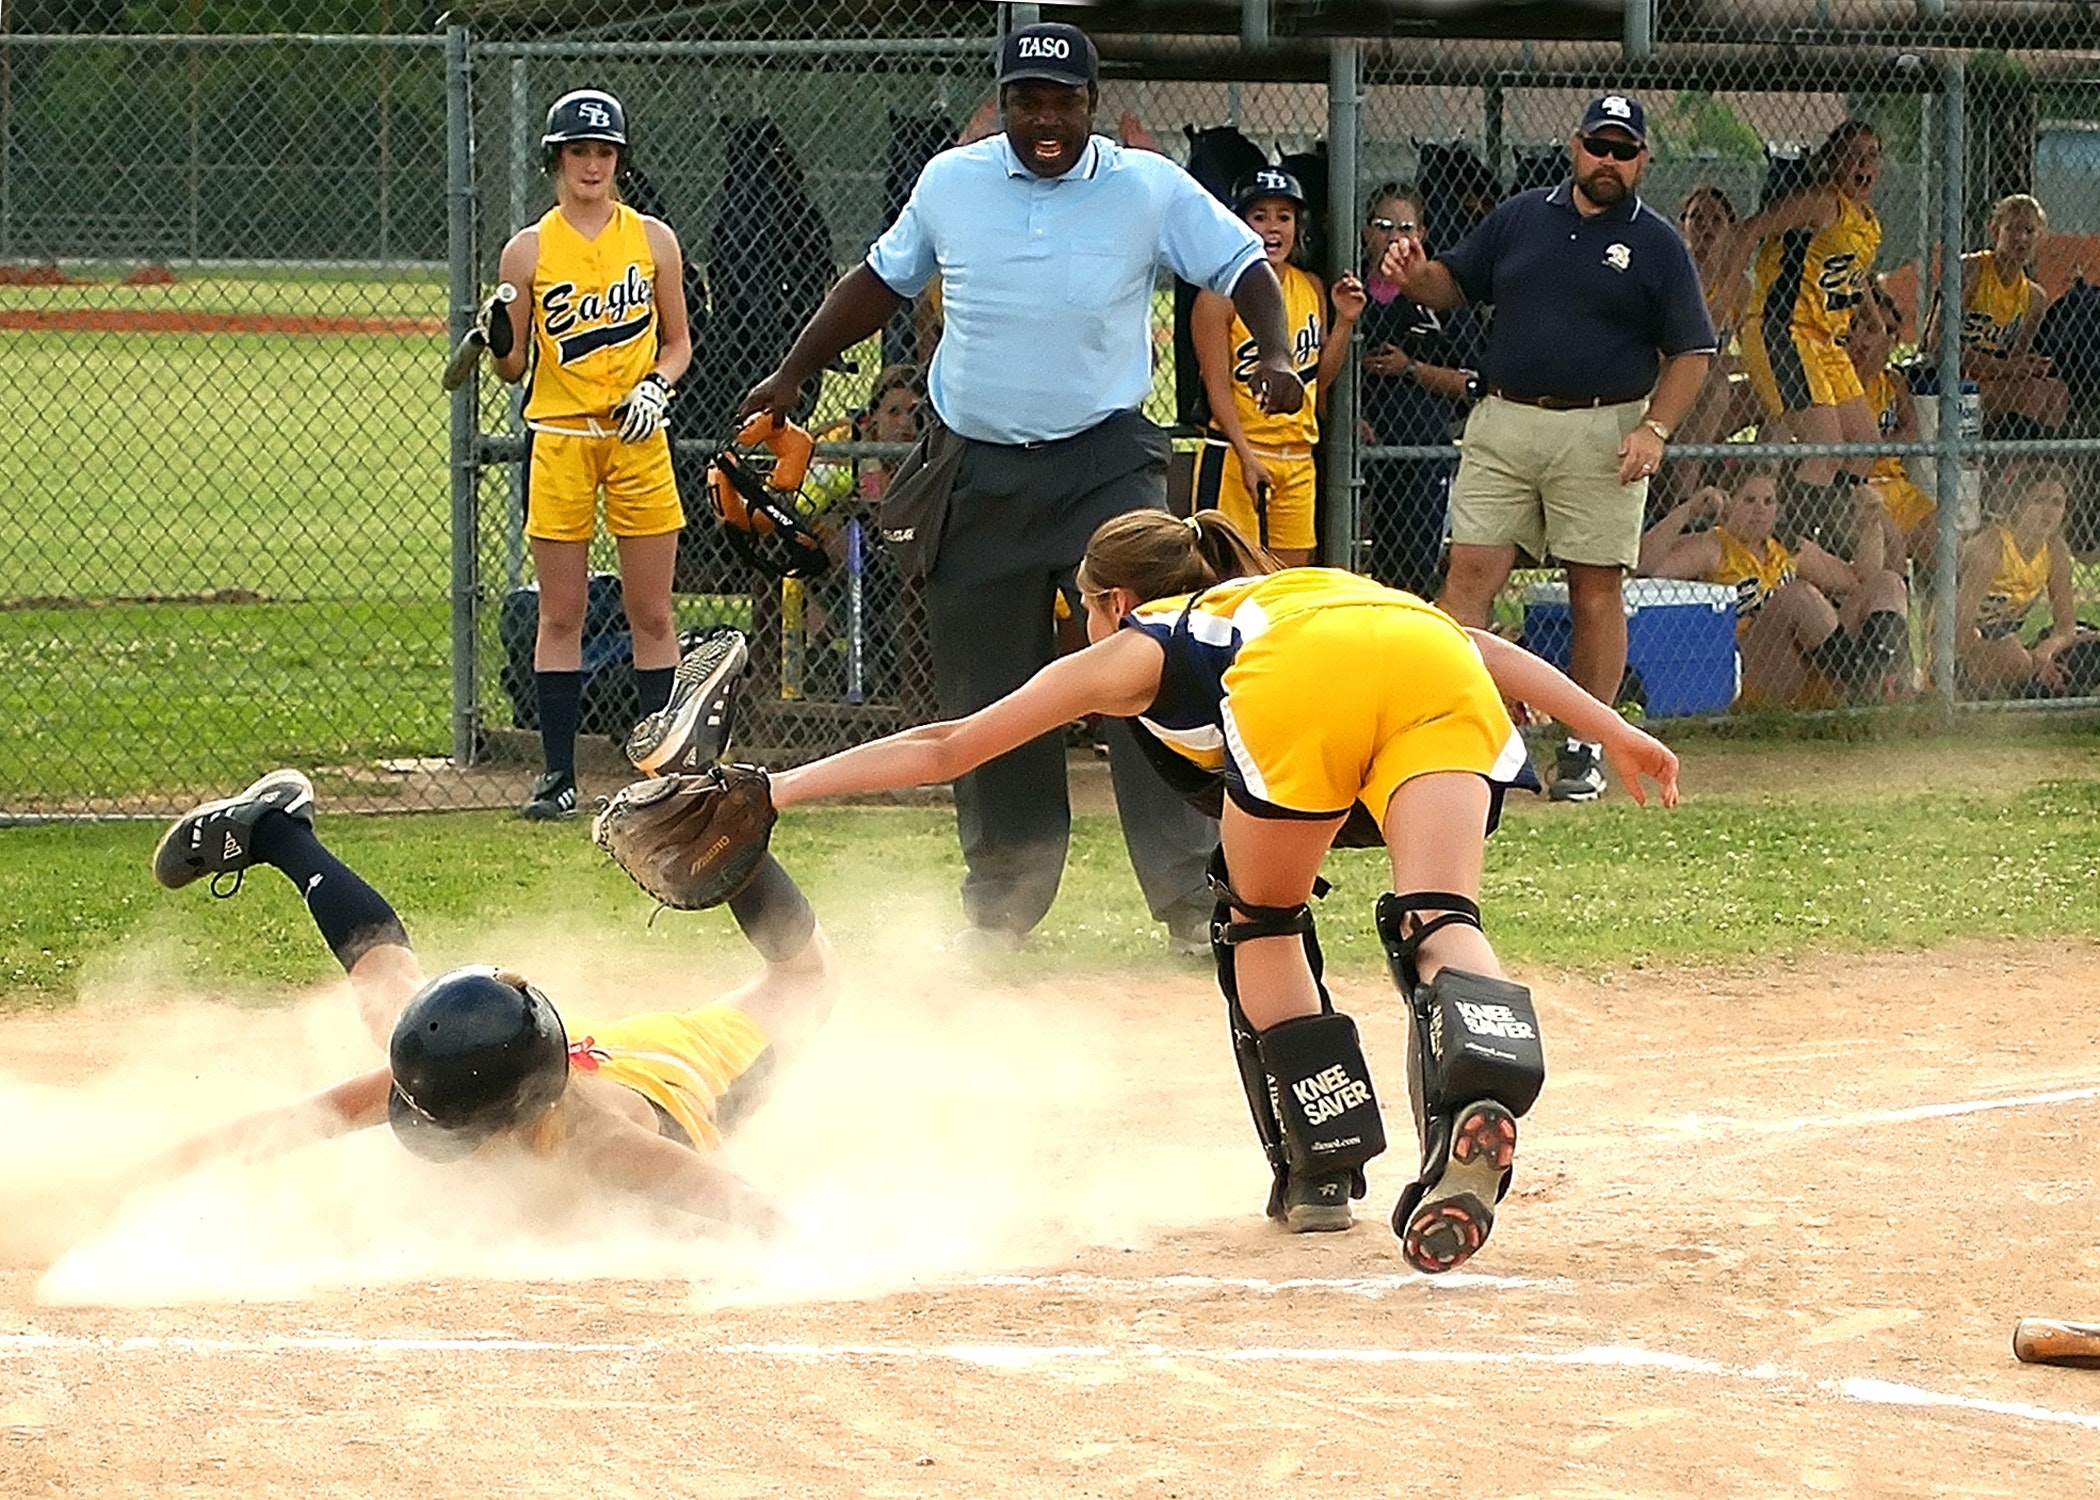 girls playing softball with ref sliding actively